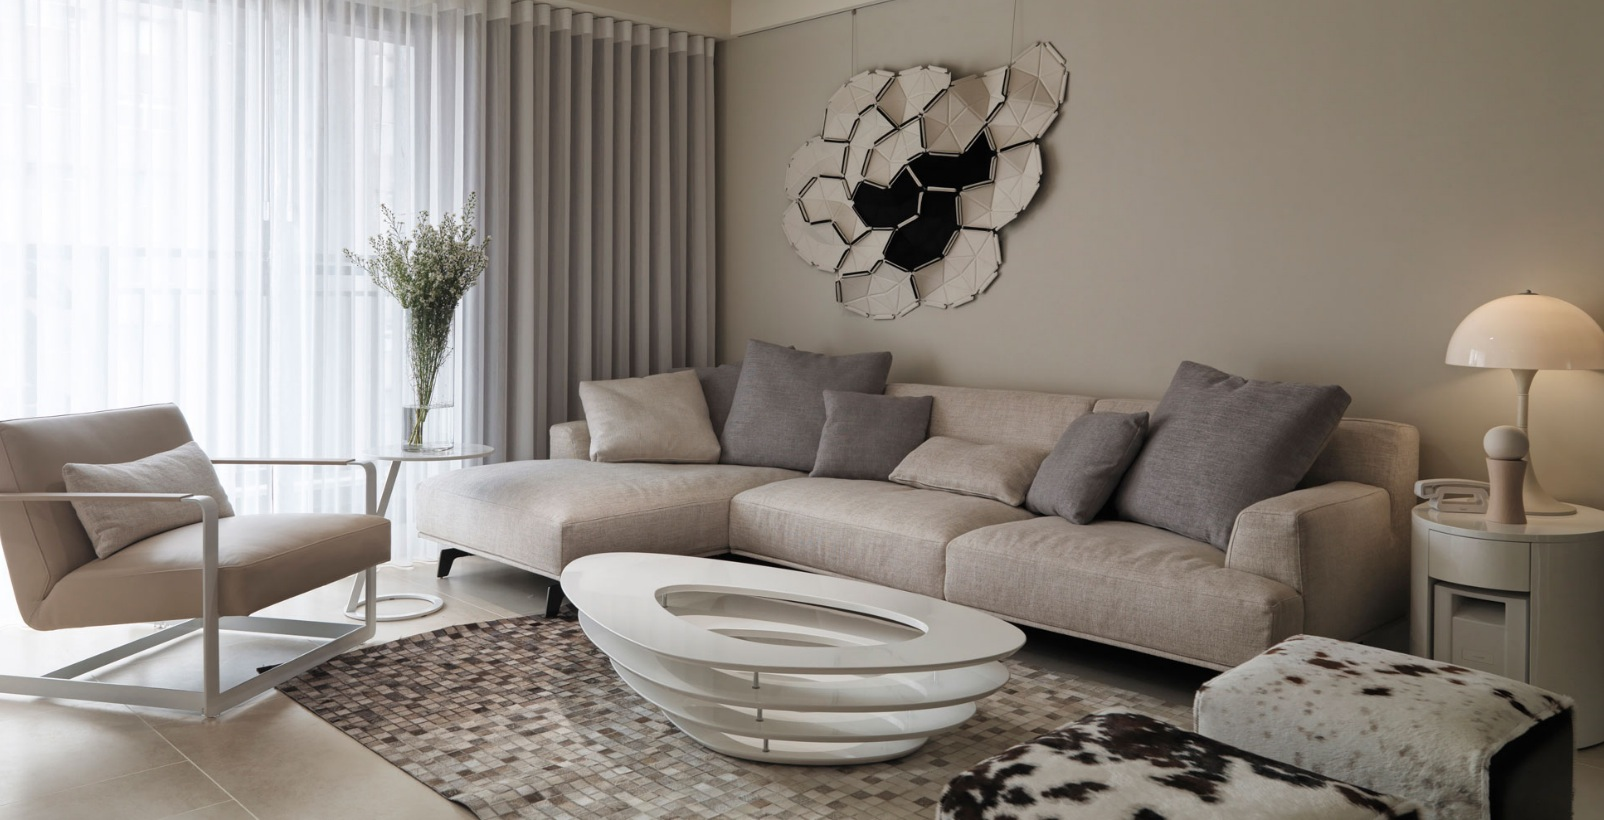 Neutral contemporary living room interior design ideas for Modern apartment living room design